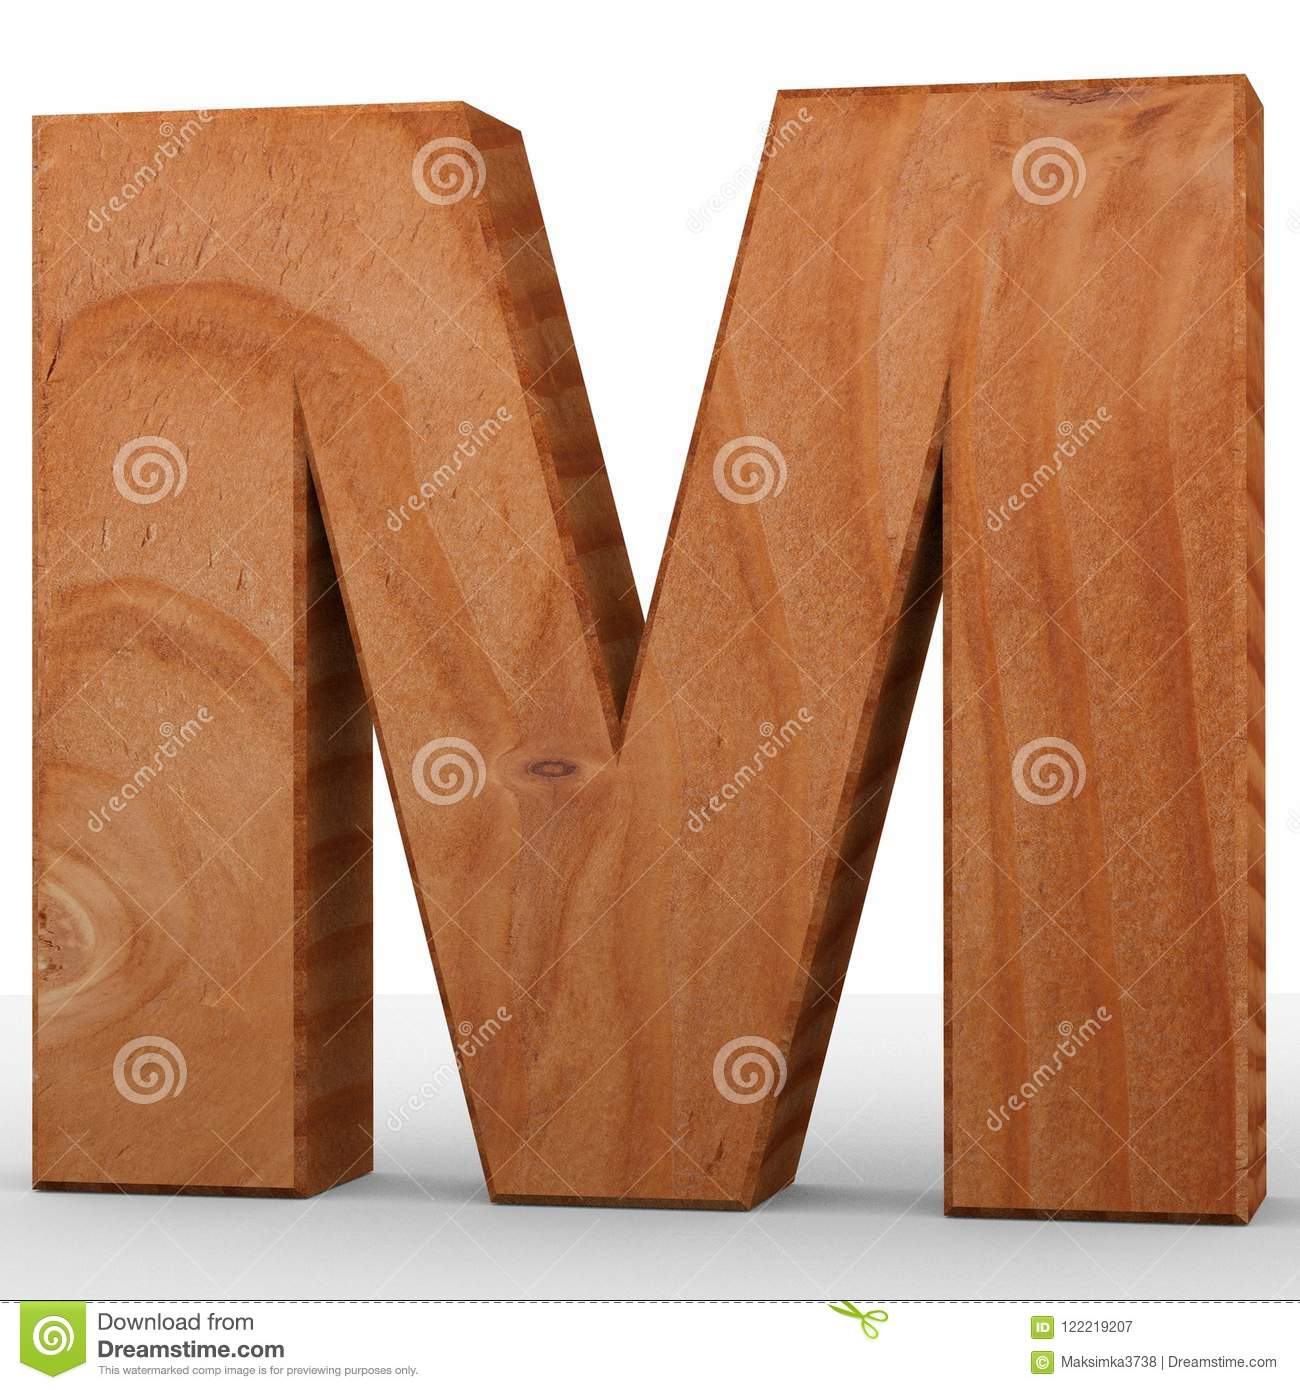 3d decorative wooden alphabet capital letter m stock illustration